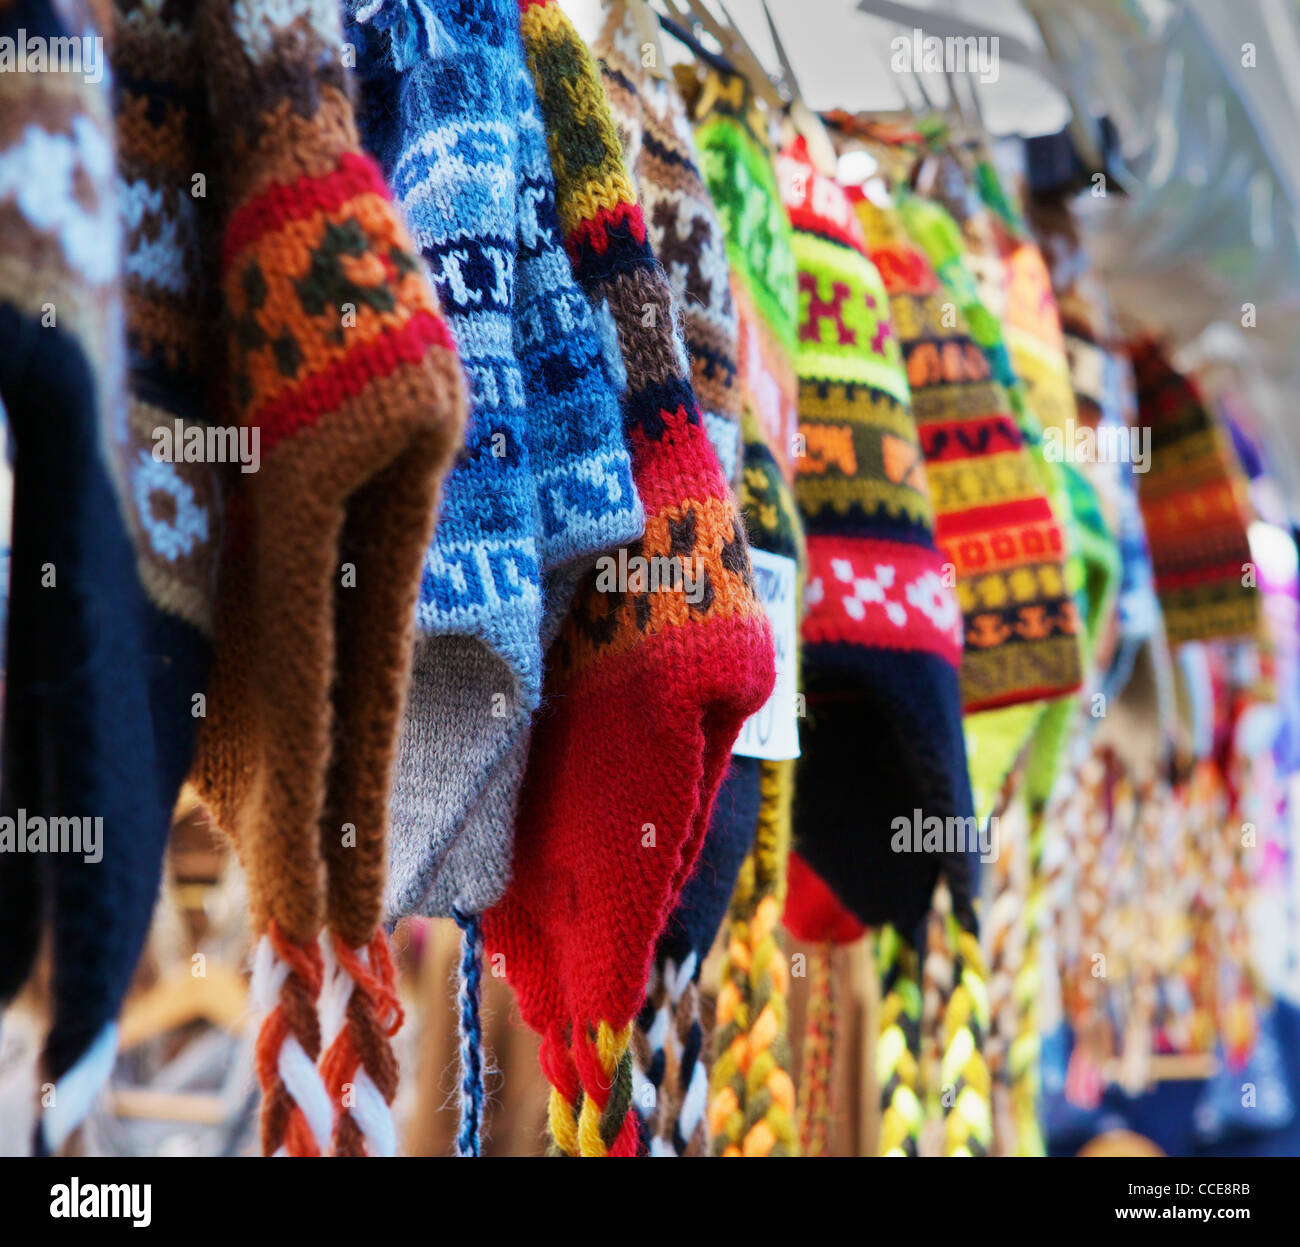 A row of colorful Alpaca wool knit hats in a row at a market - Stock Image